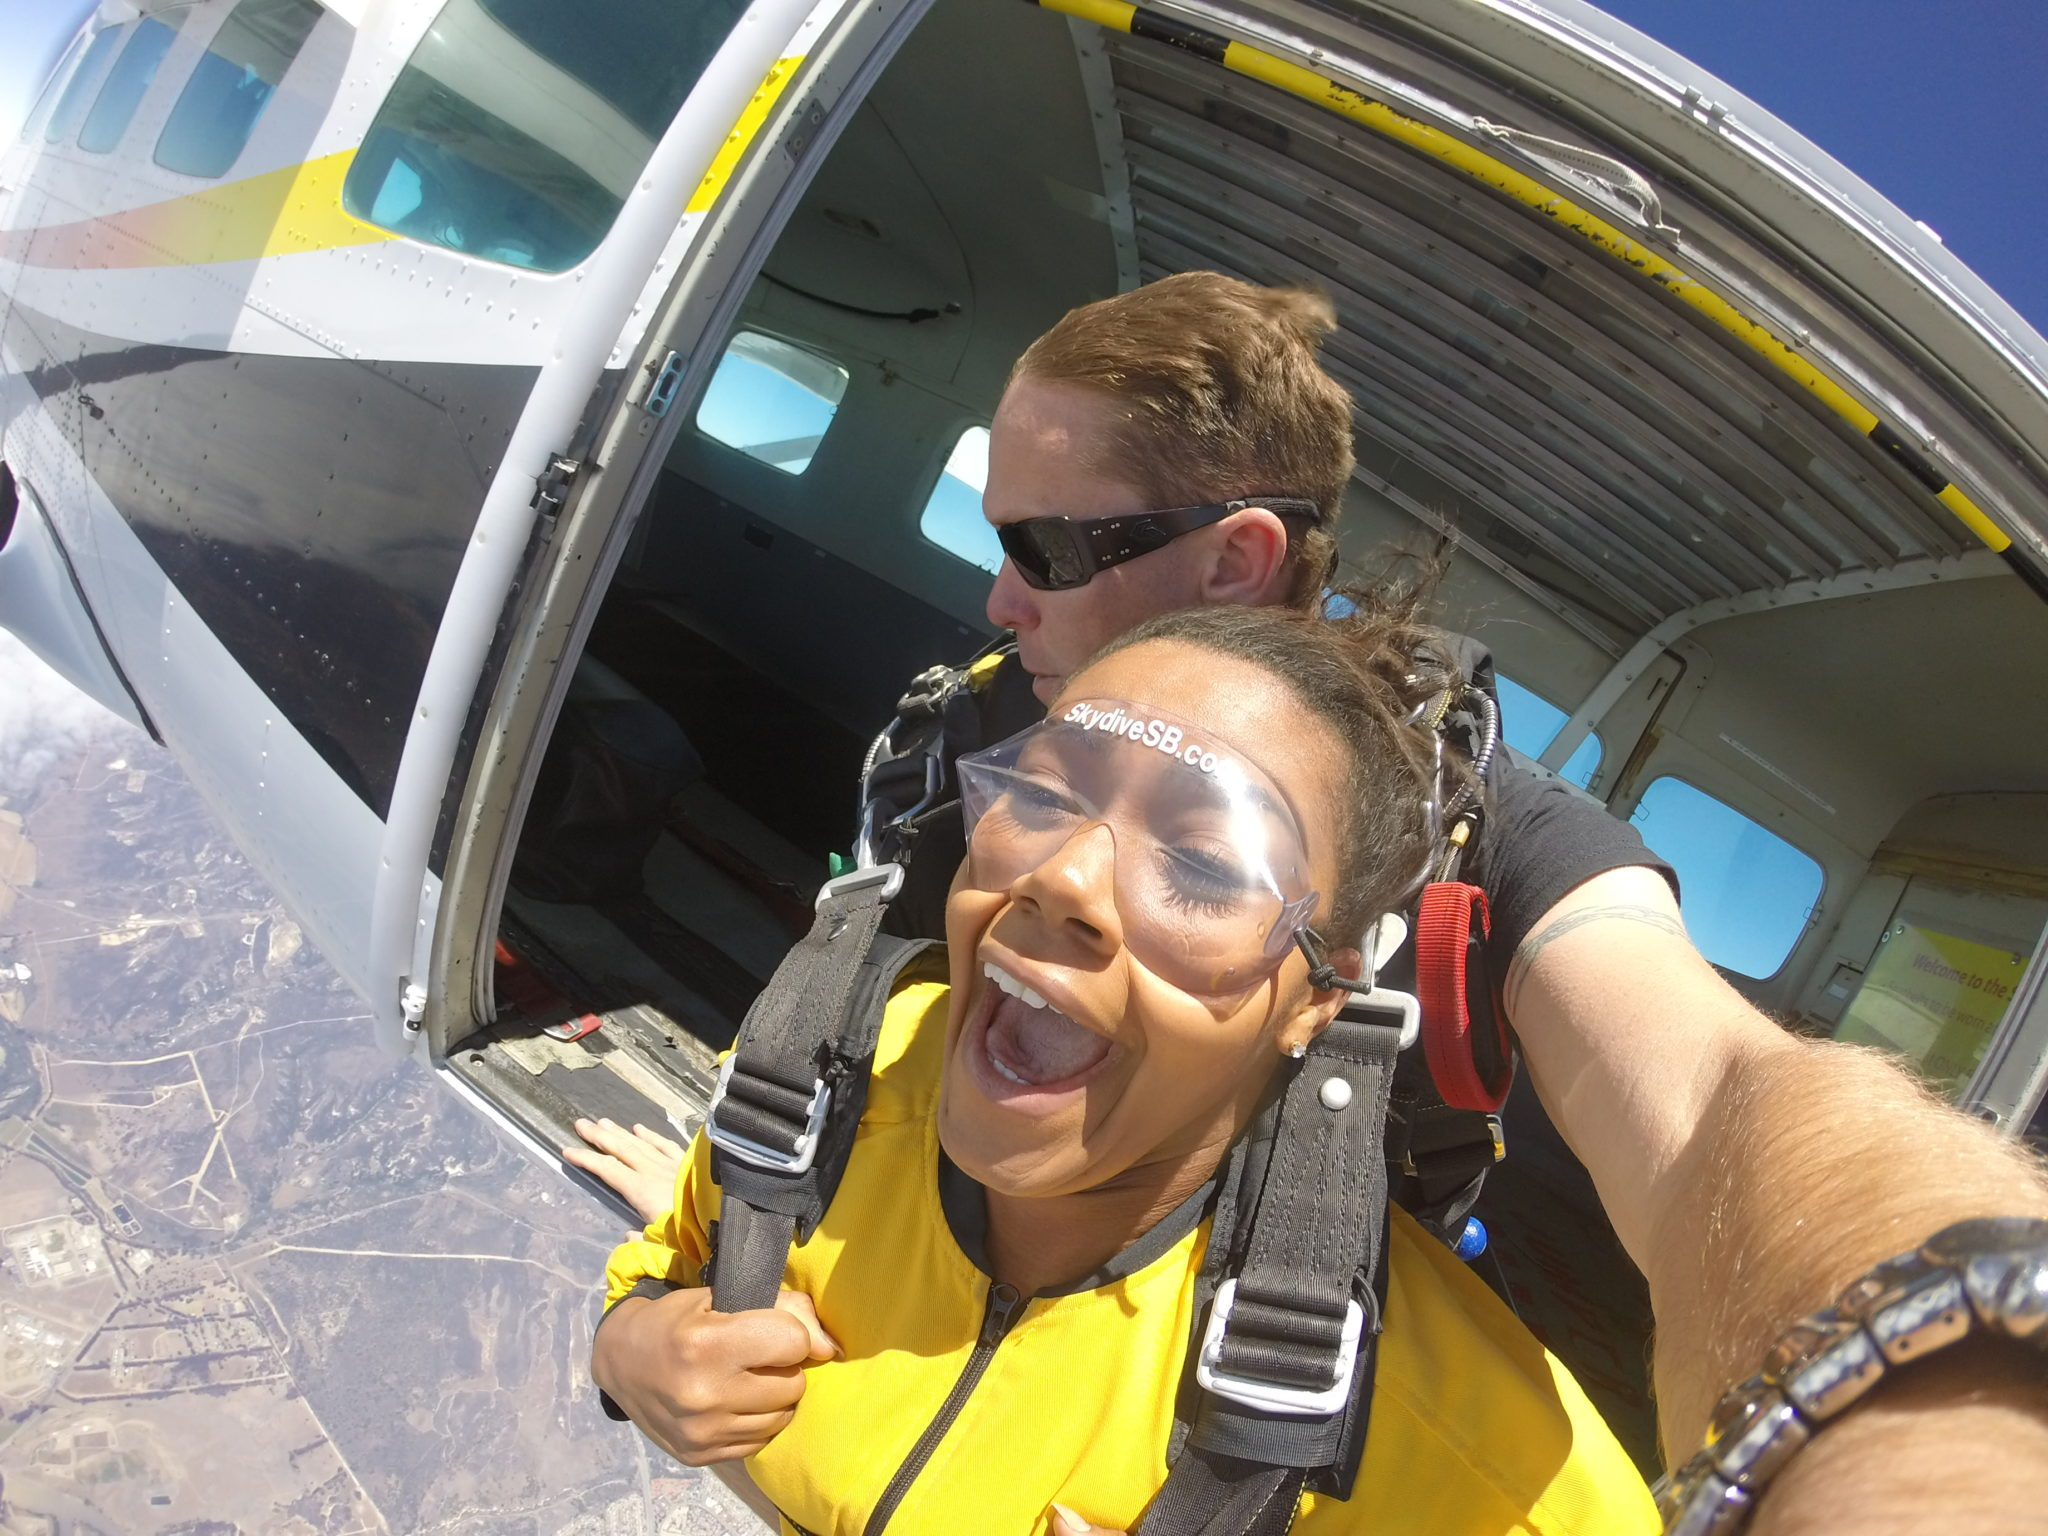 tandem skydivers jumping out of plane